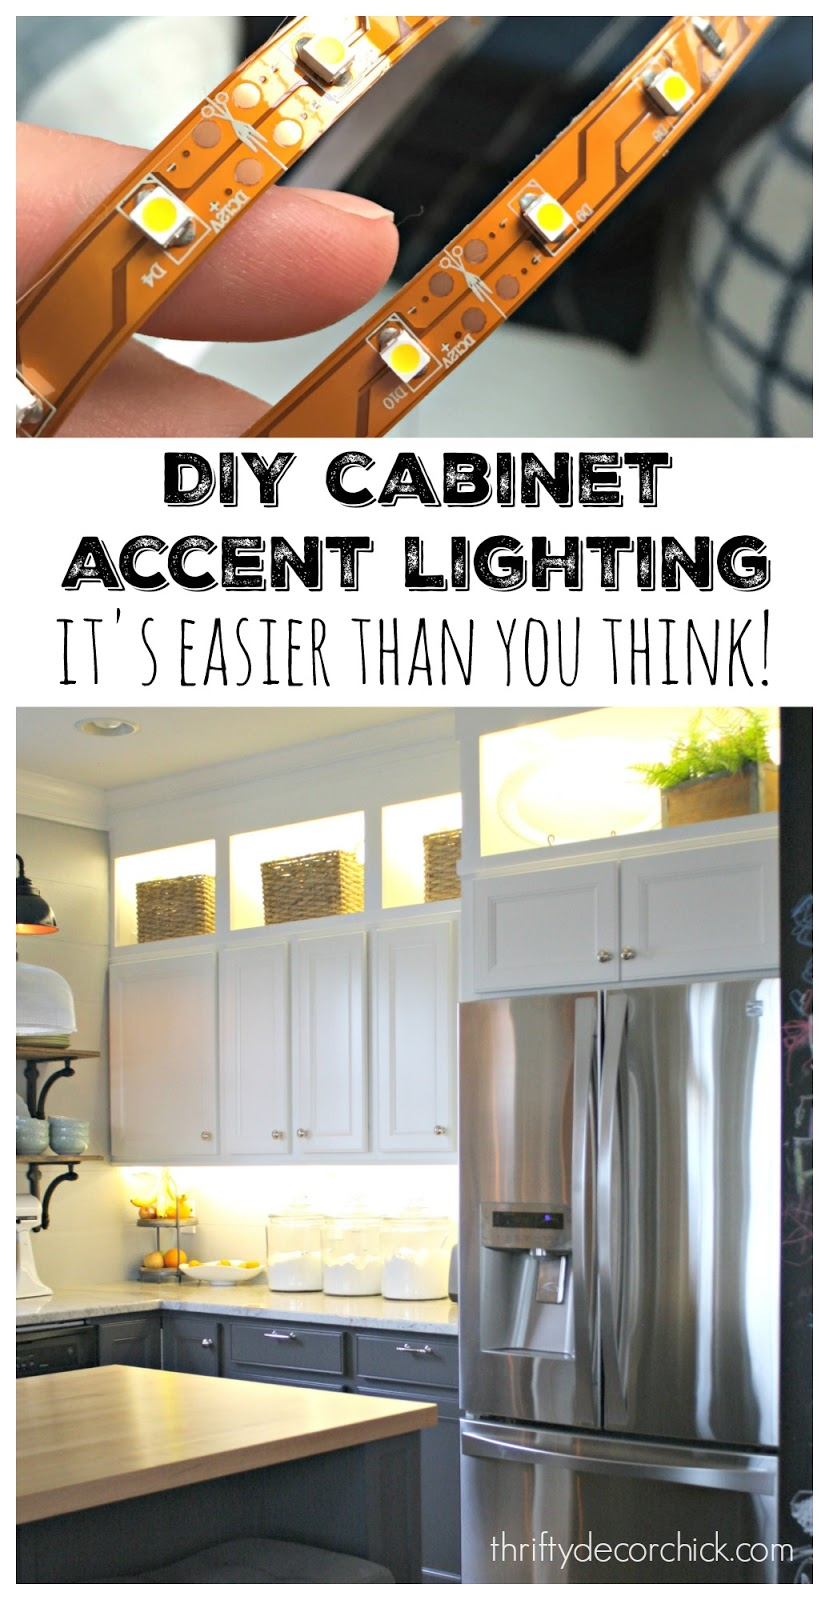 Rope Lights Above Cabinets In Kitchen Diy Upper And Lower Cabinet Lighting From Thrifty Decor Chick